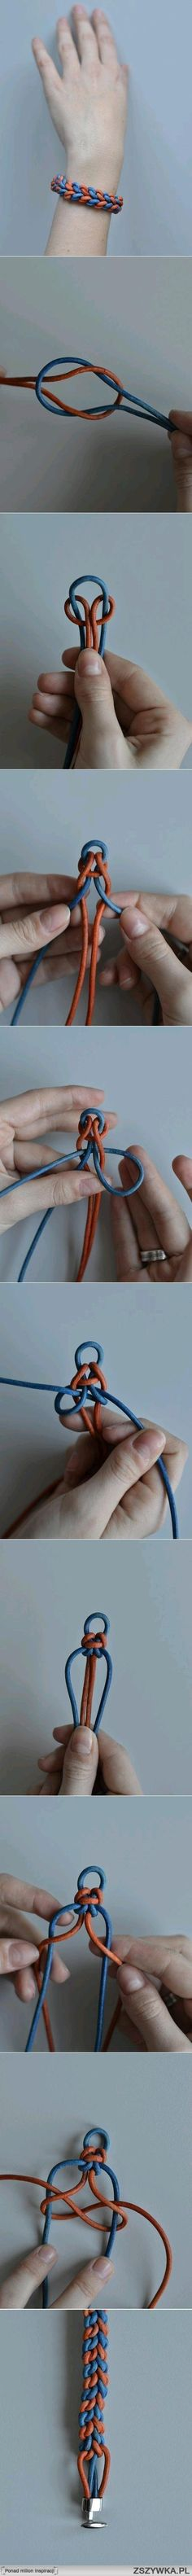 Diy braided bracelet tutorial